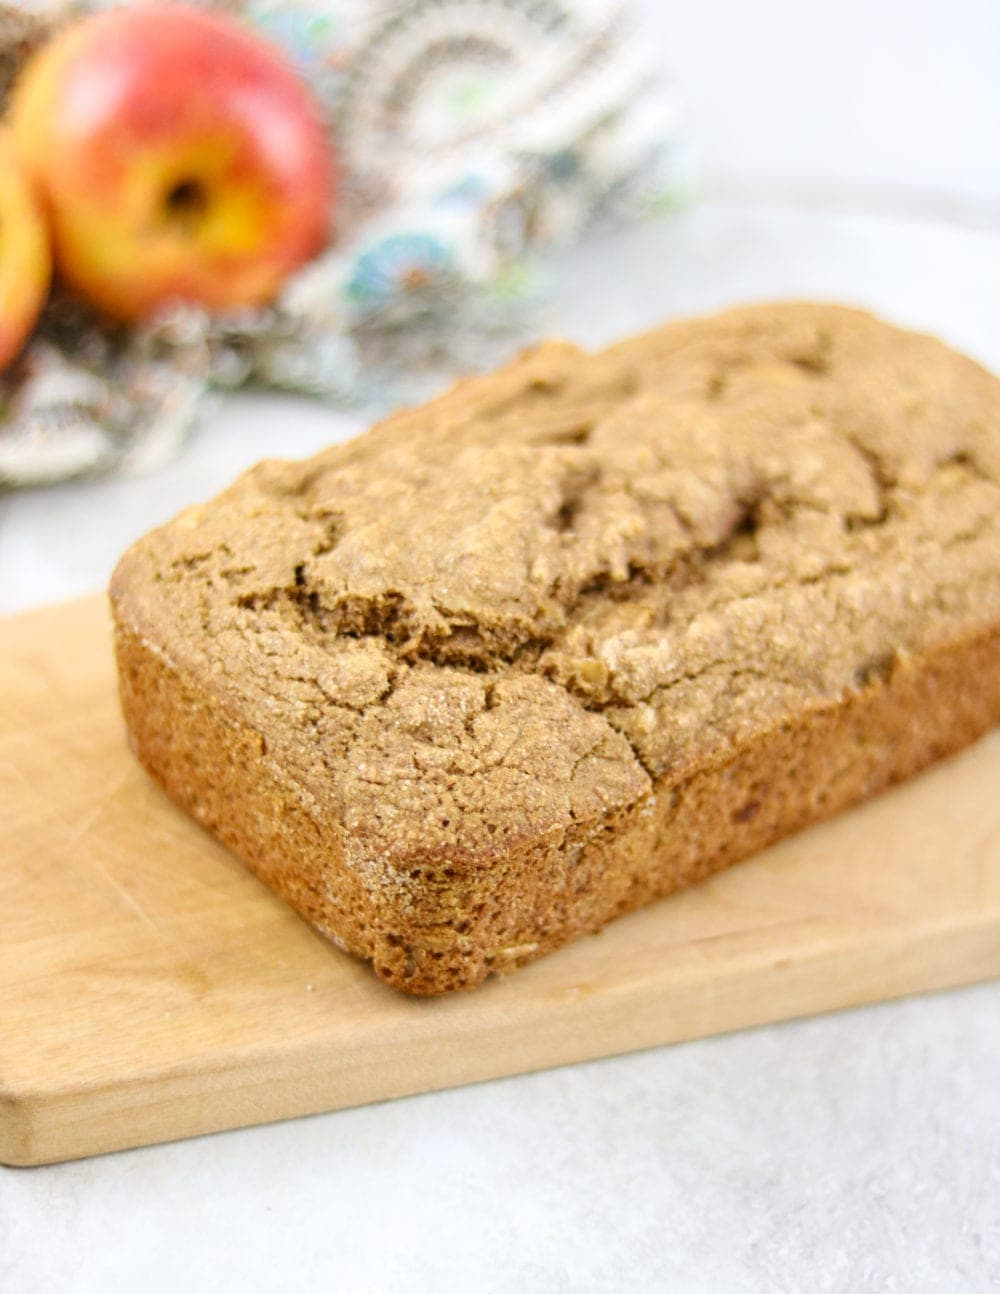 Spiced Apple Bread (Whole Wheat, Low-Fat) Quick bread for apple bread that is filled with fresh apples and warming spices and sweetened with maple syrup.